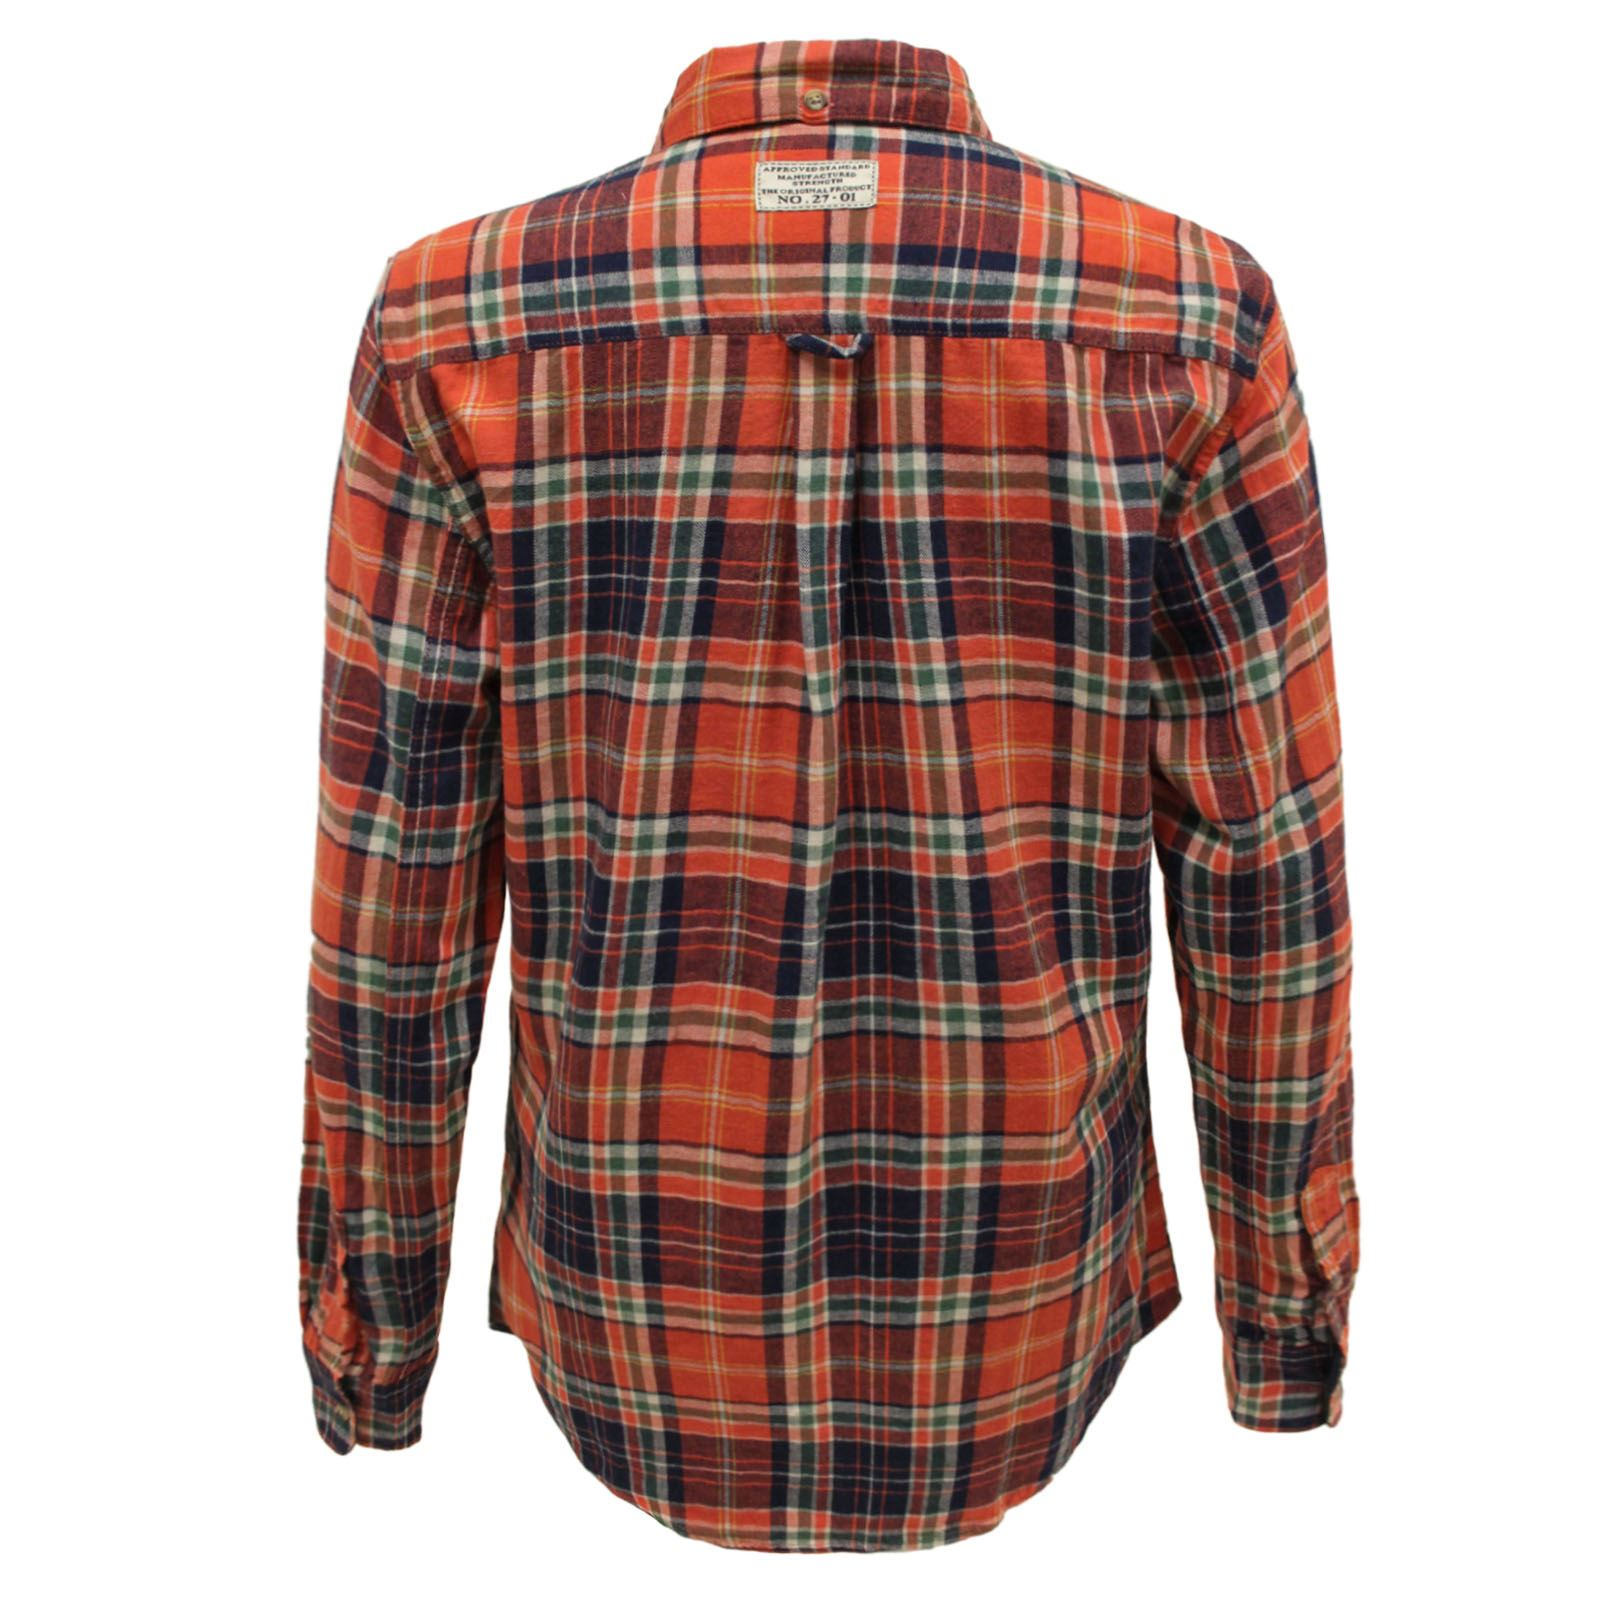 Our men's linen shirt collection features a handsome variety of slim fit short sleeve shirts in multi-stripe, plaid and vivid solid colors. Versatile men's long sleeve linen shirts are all-occasion favorites available in an assortment of fashionable colors and patterns.